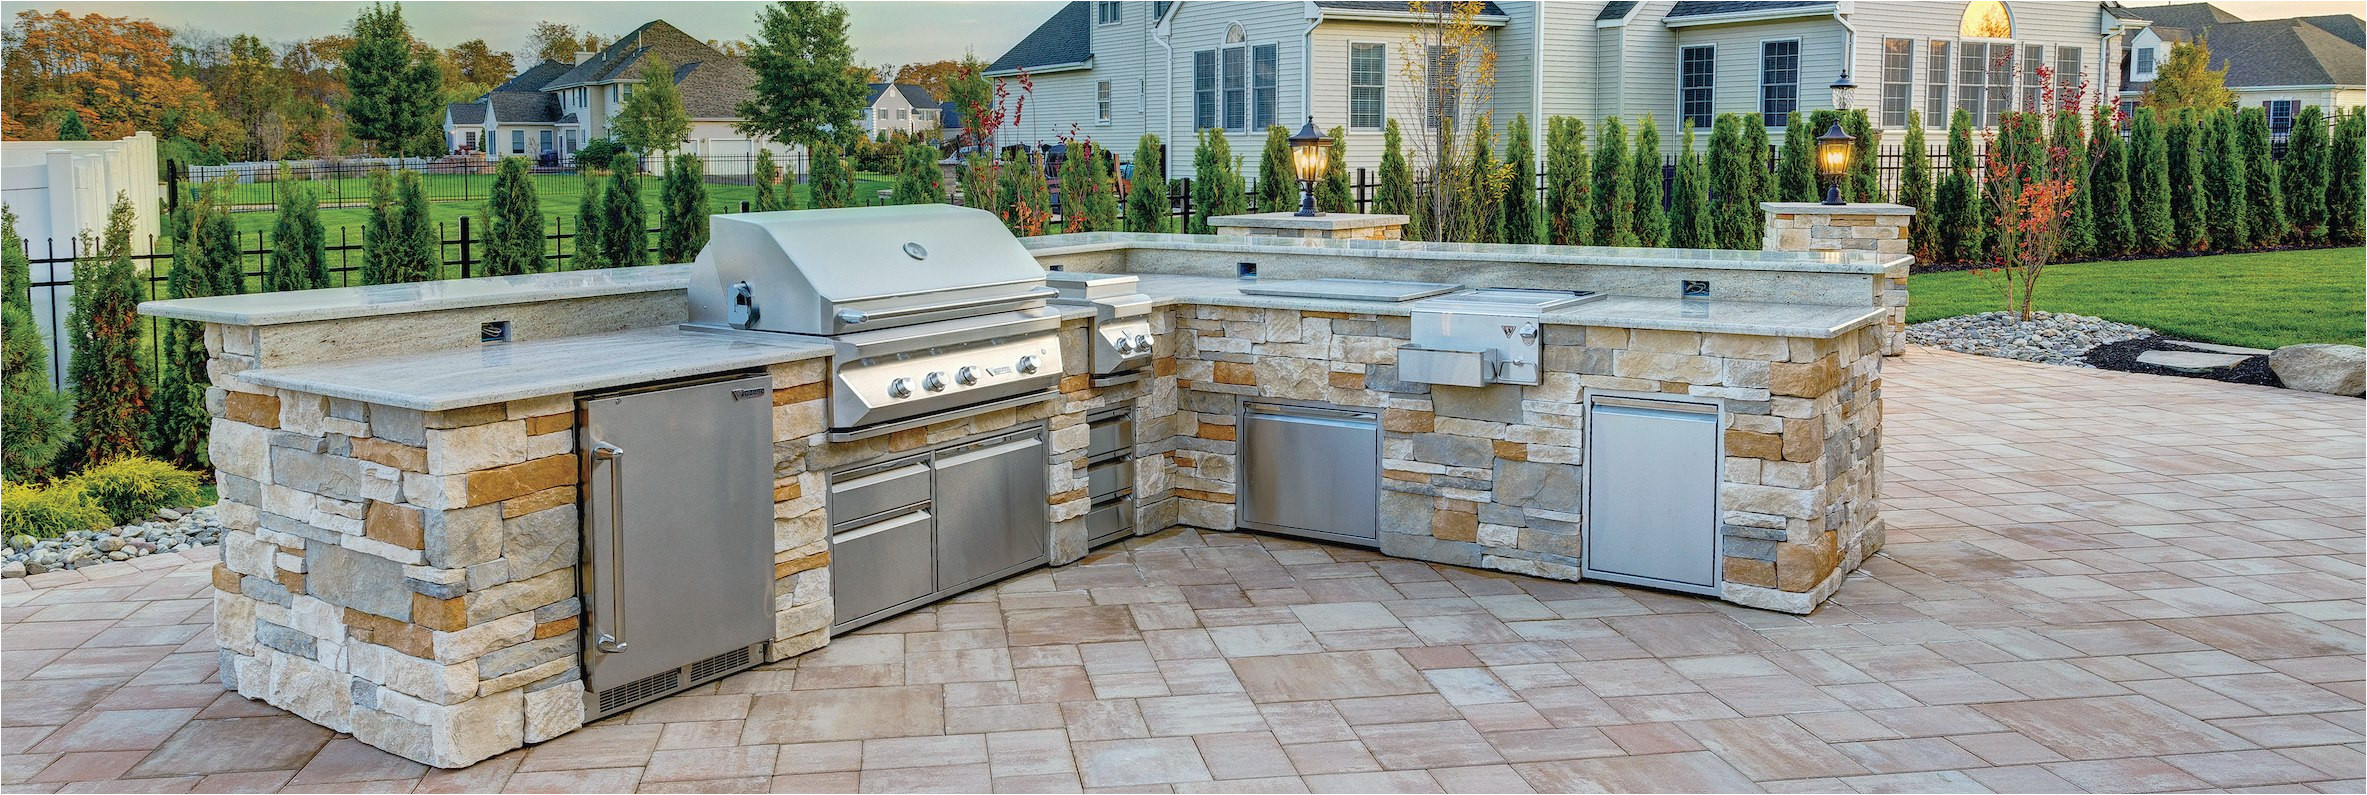 ep henry making and maintaining an outdoor kitchen is easier than you think